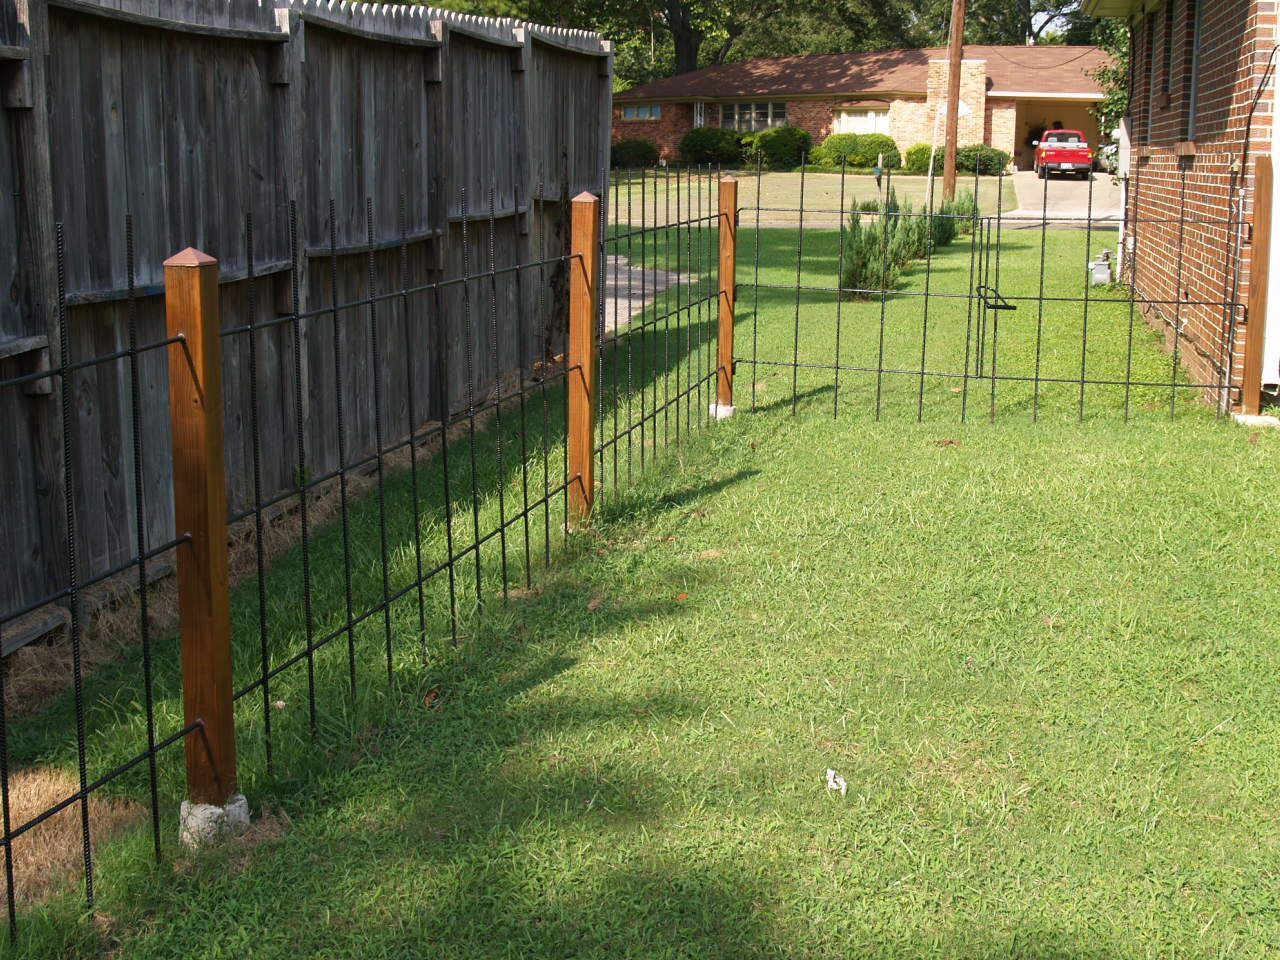 Build A Decorative Metal Rebar Fence For Your Home For